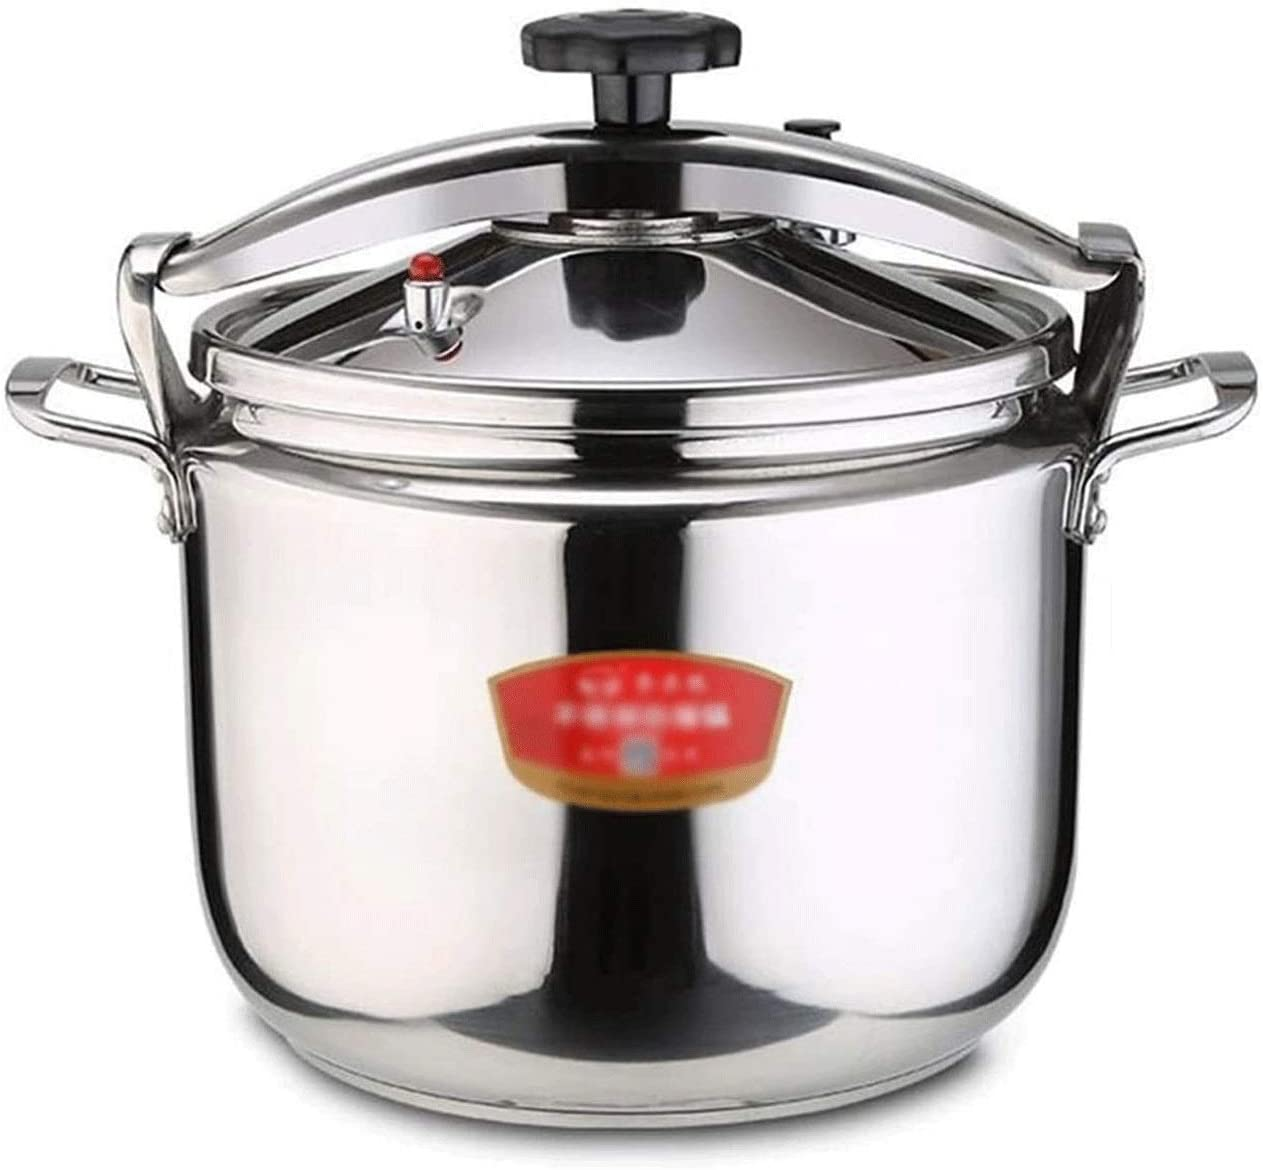 Z-COLOR Commercial Explosion-proof Pressure Cooker 304 Stainless Steel Large Capacity Super Thick Pressure Cooker Induction Cooker Hotel Gas General Induction Cooker (Size : 22L)